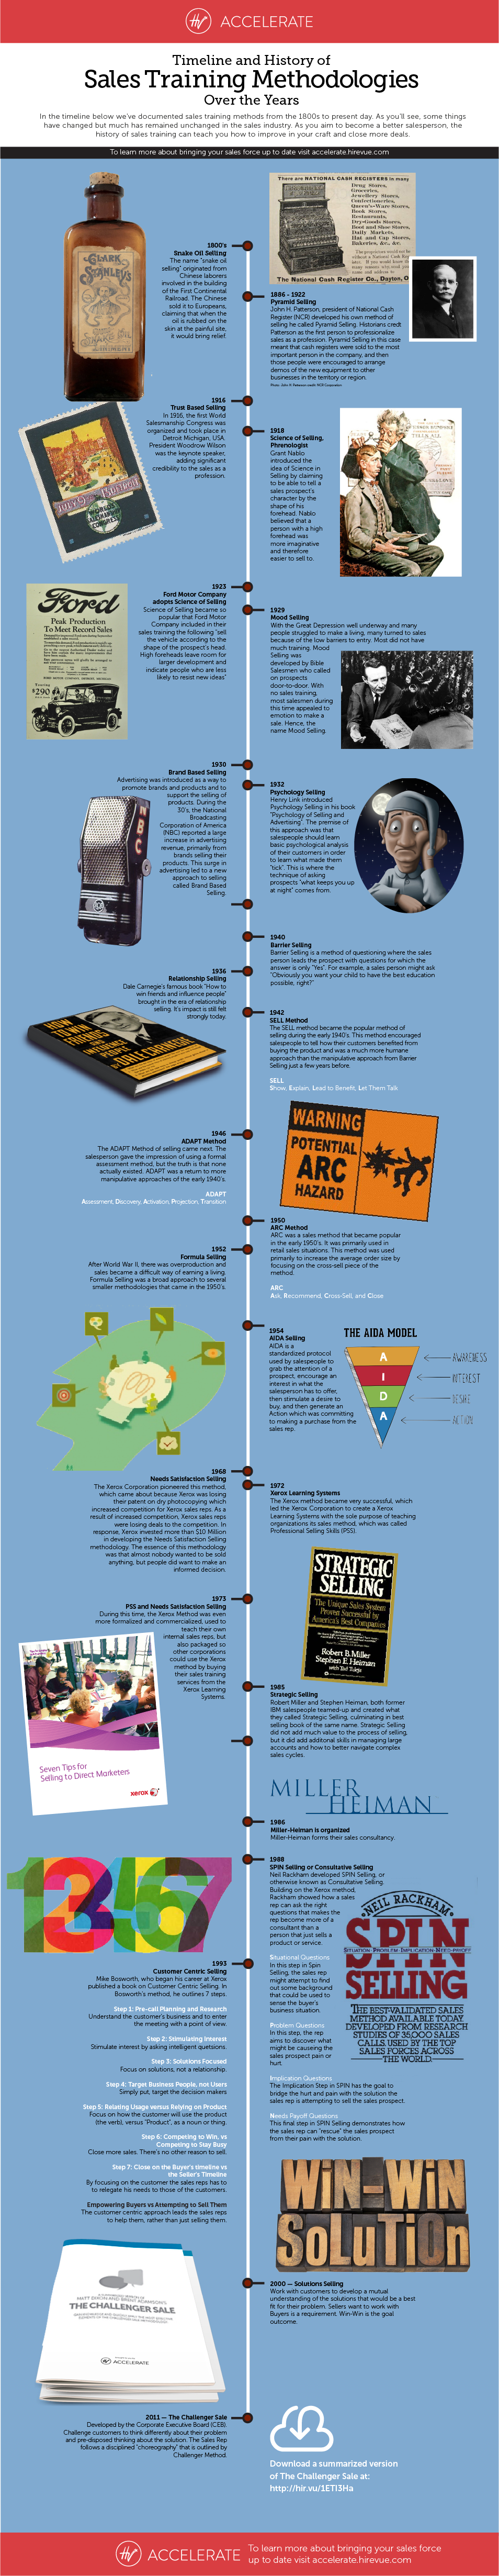 Making legal history approaches and methodologies ebook array a history of 21 sales methodologies infographic rh blog hubspot com fandeluxe